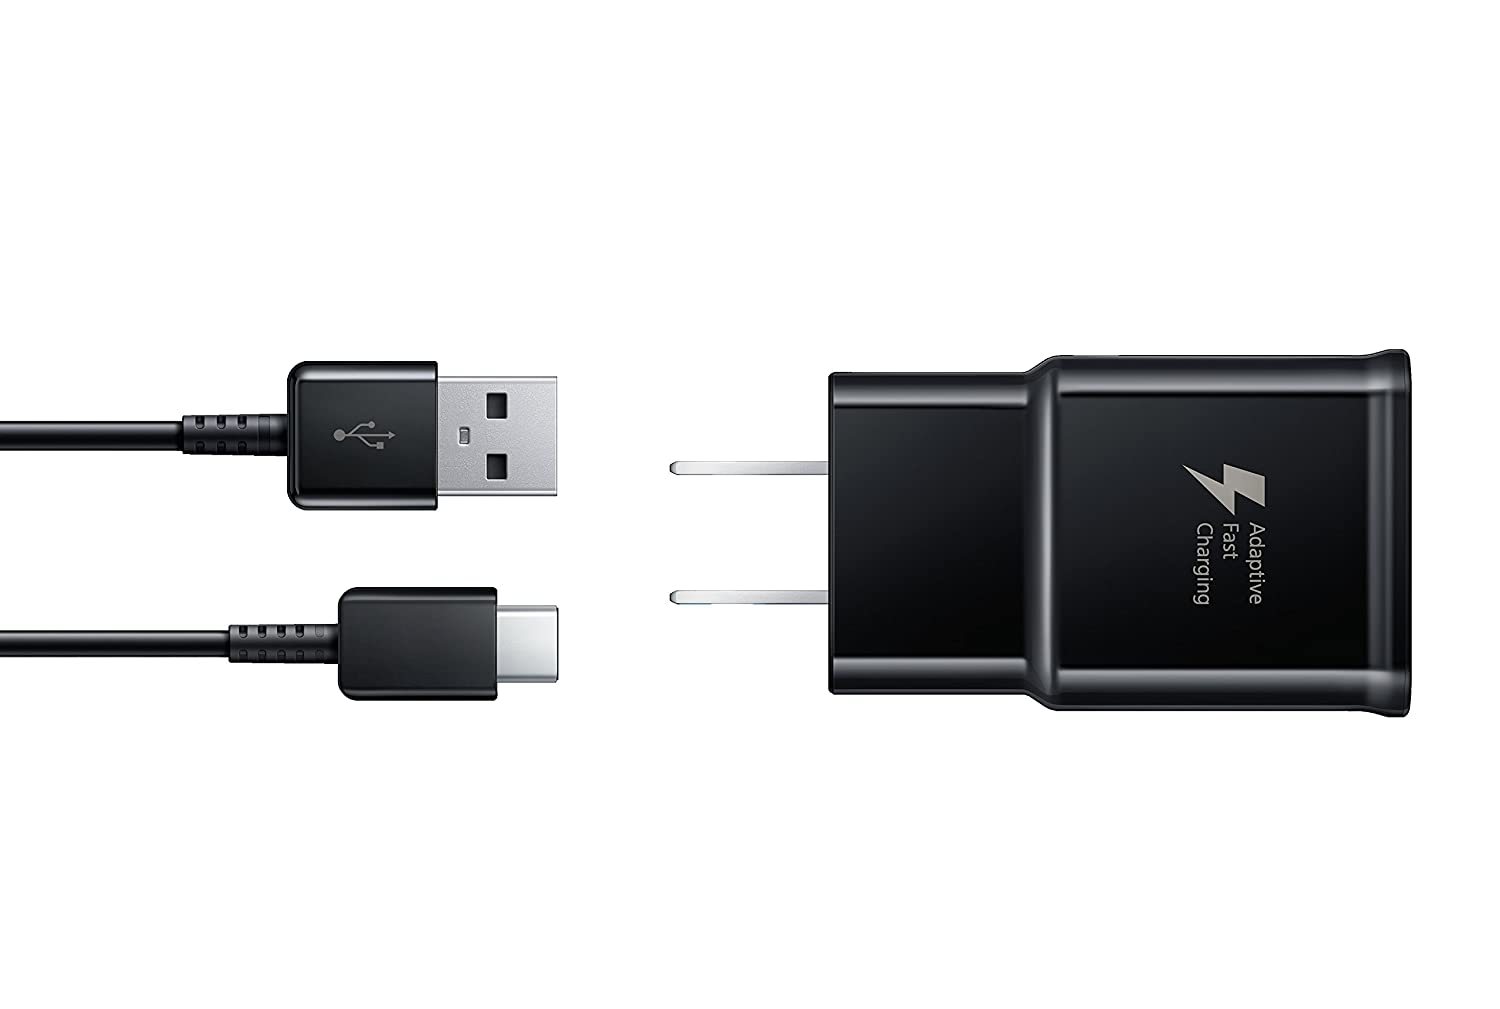 Samsung Fast Charger EP-TA20JBE and USB Type C Cable EP-DG950CBE for Galaxy S8 EP-TA20JBEUGUS